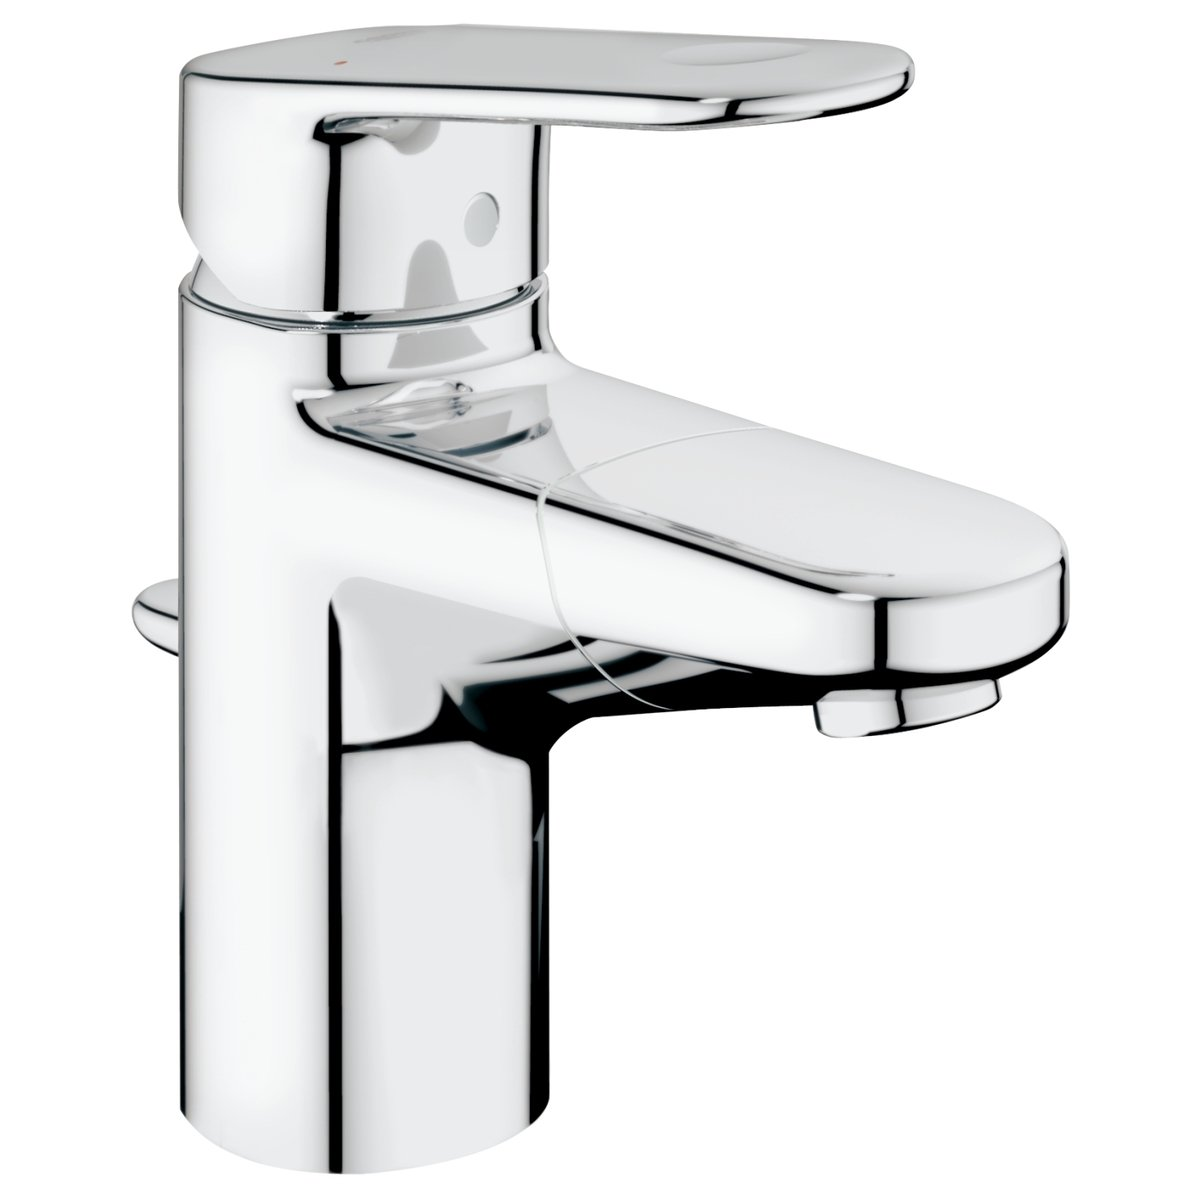 Grohe Euphoria Douchesysteem 180 Chroom Sanitair Outlet Grohe